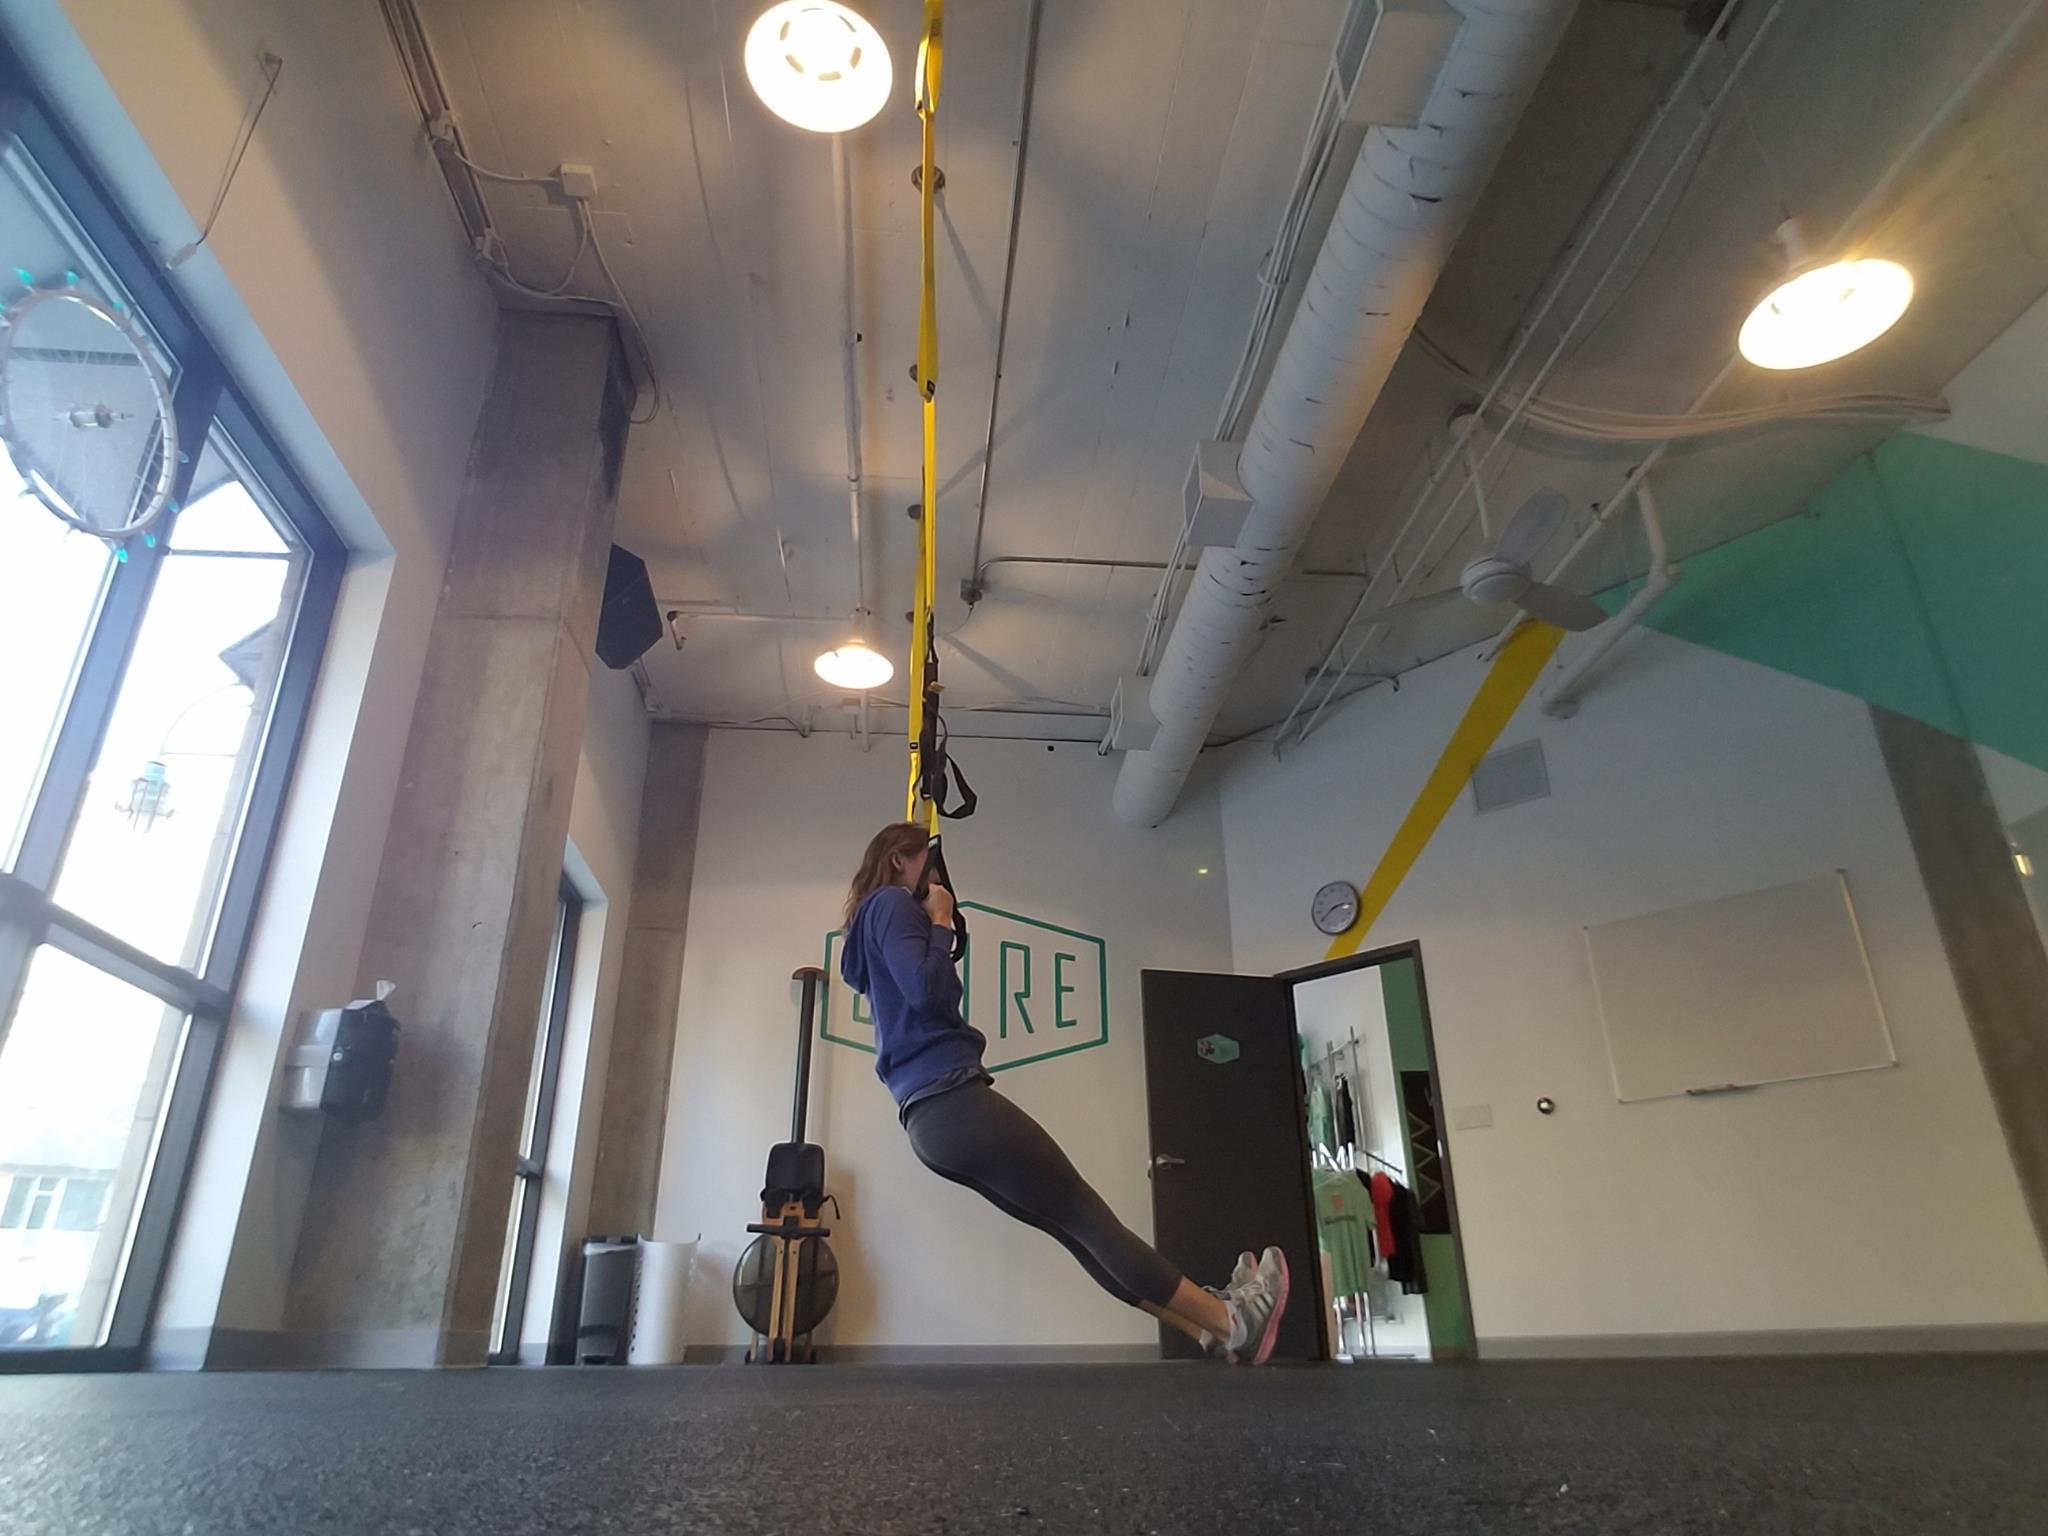 Move feet further away from body to make more challenging.